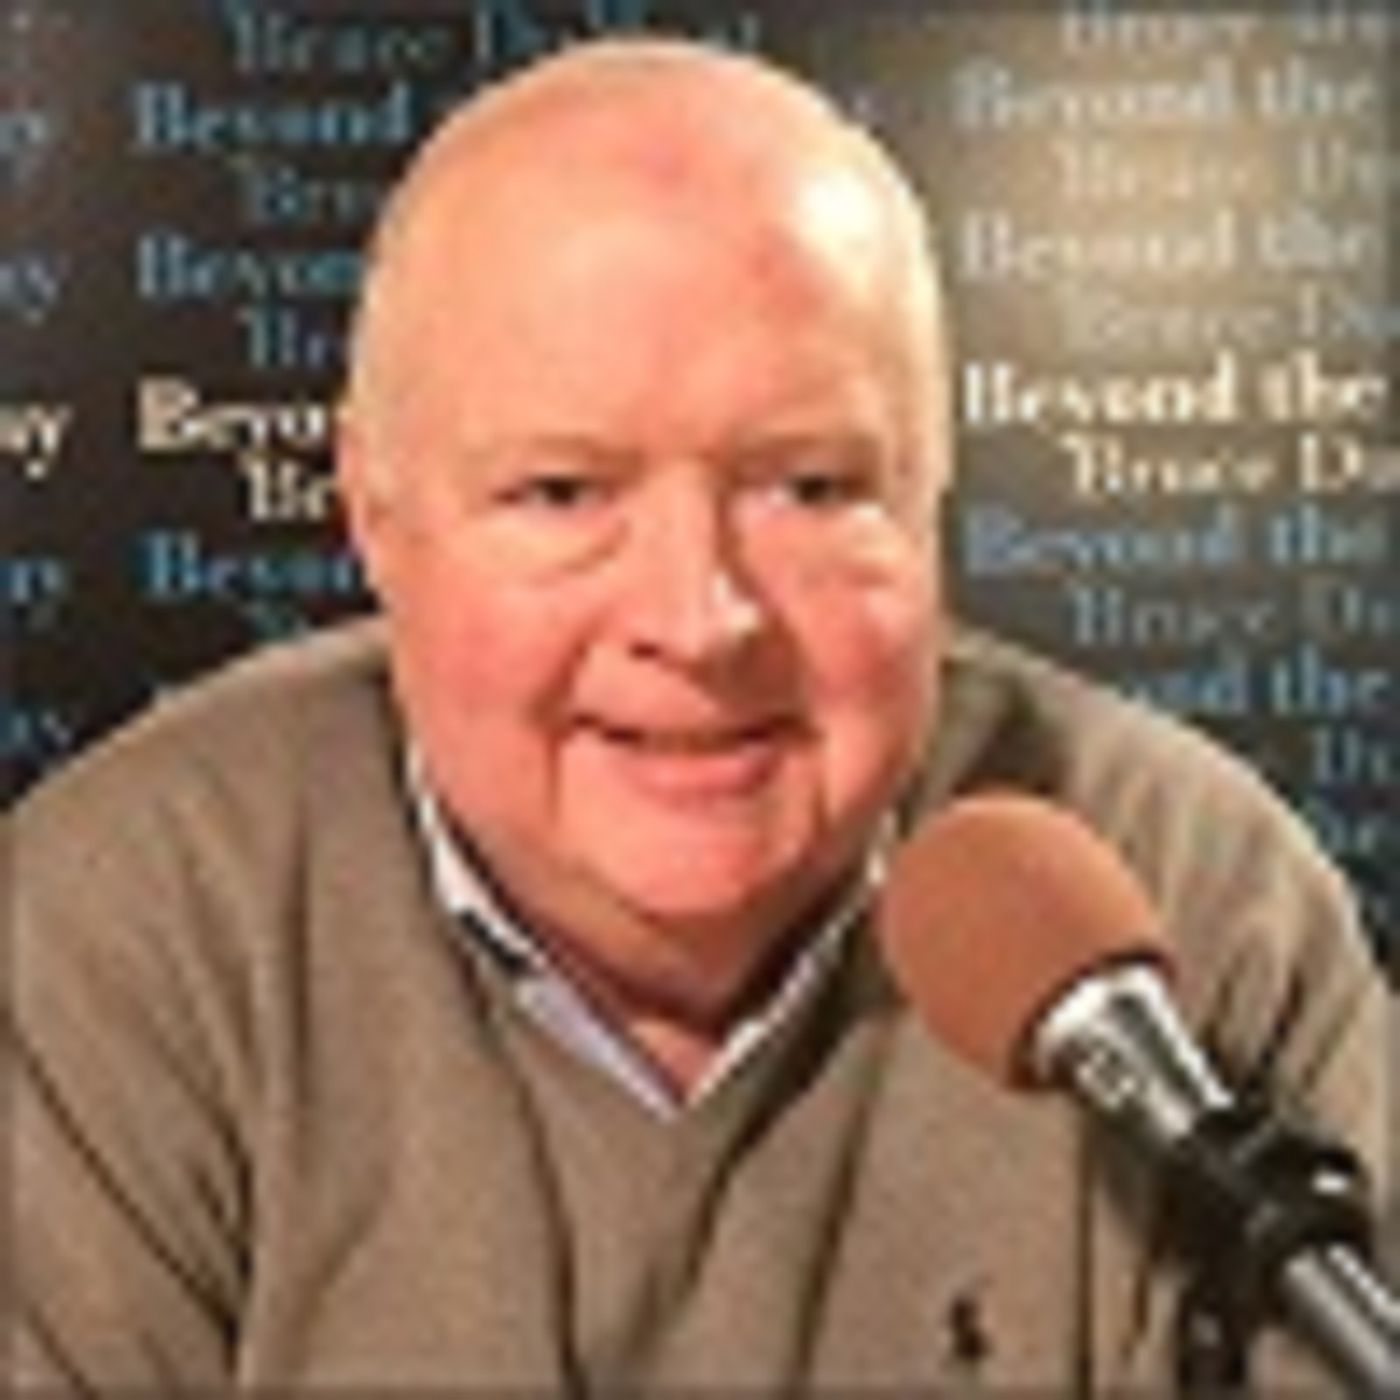 Heartland Newsfeed Radio Network: Beyond The Beltway with Bruce DuMont (August 18, 2019)